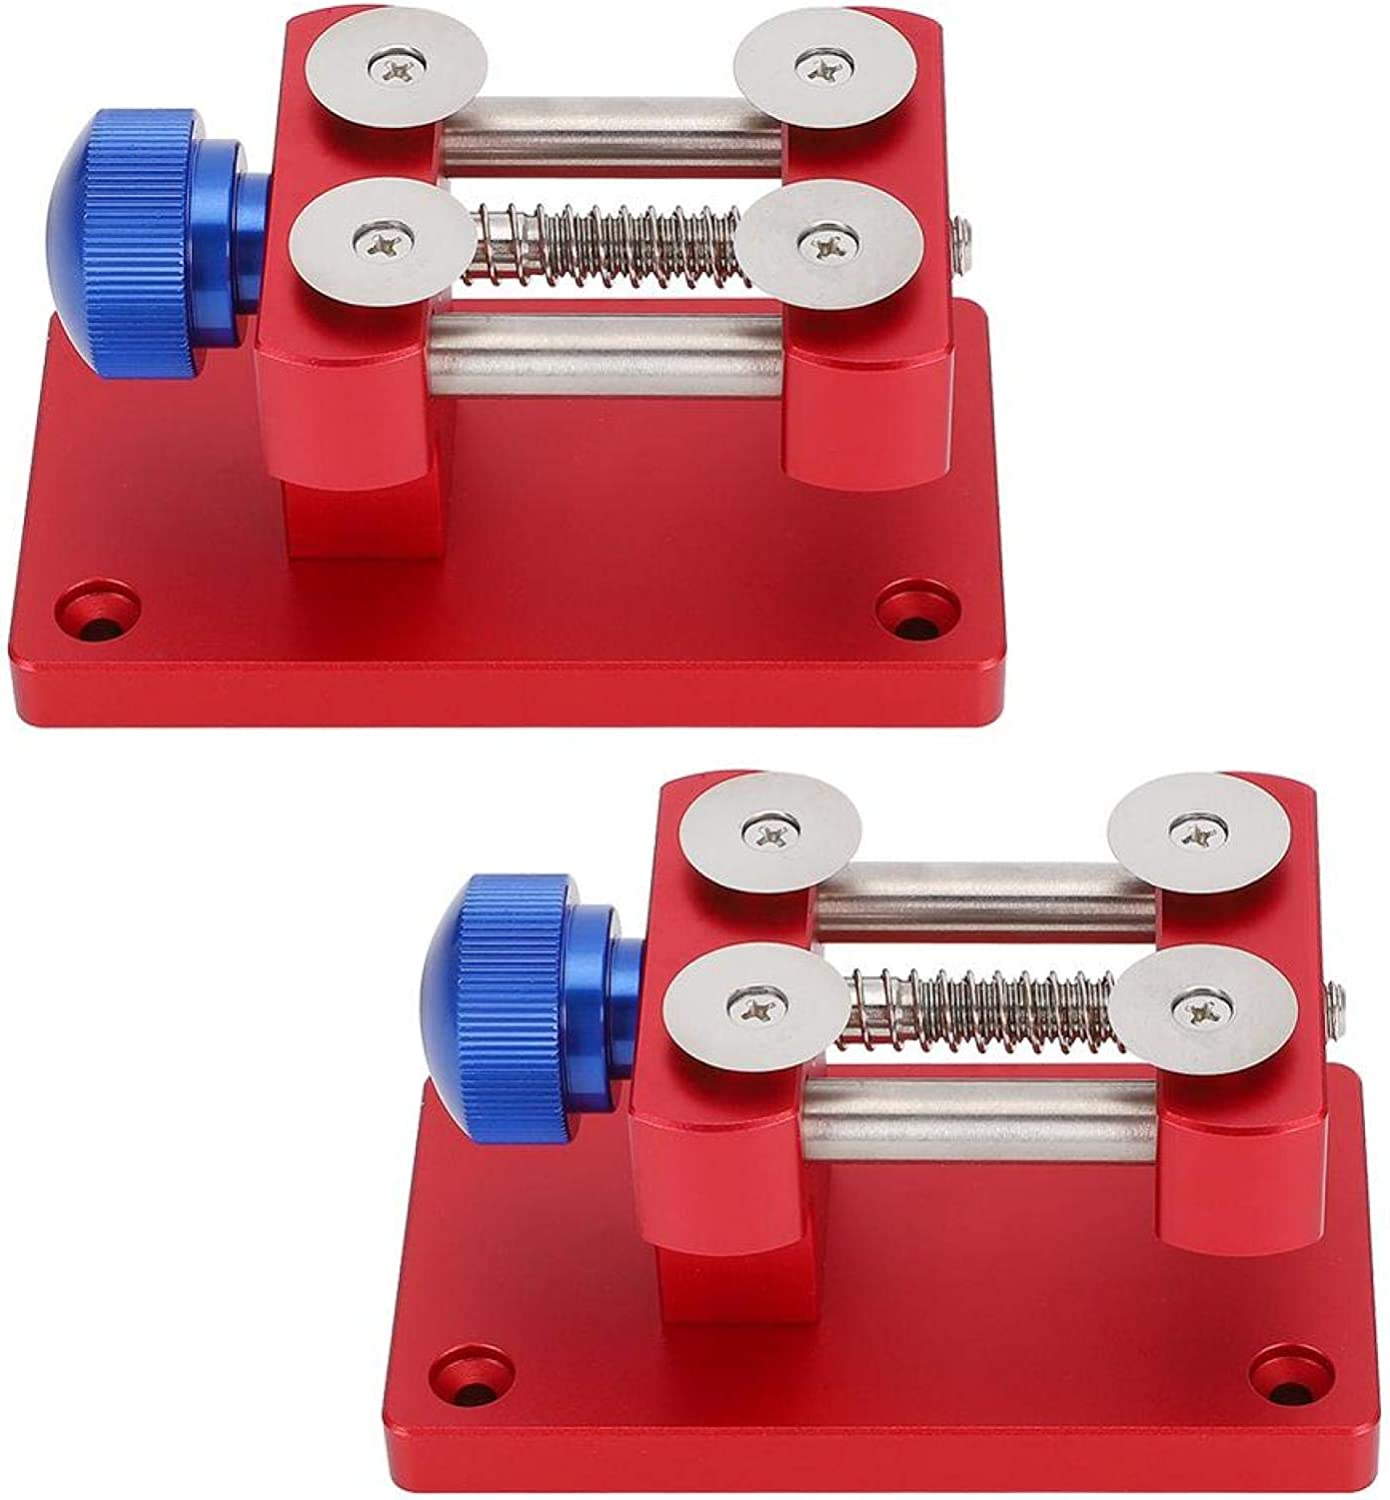 Red High Hardness Professional Watch Great interest Opener Bezel Max 83% OFF W Tool Opening